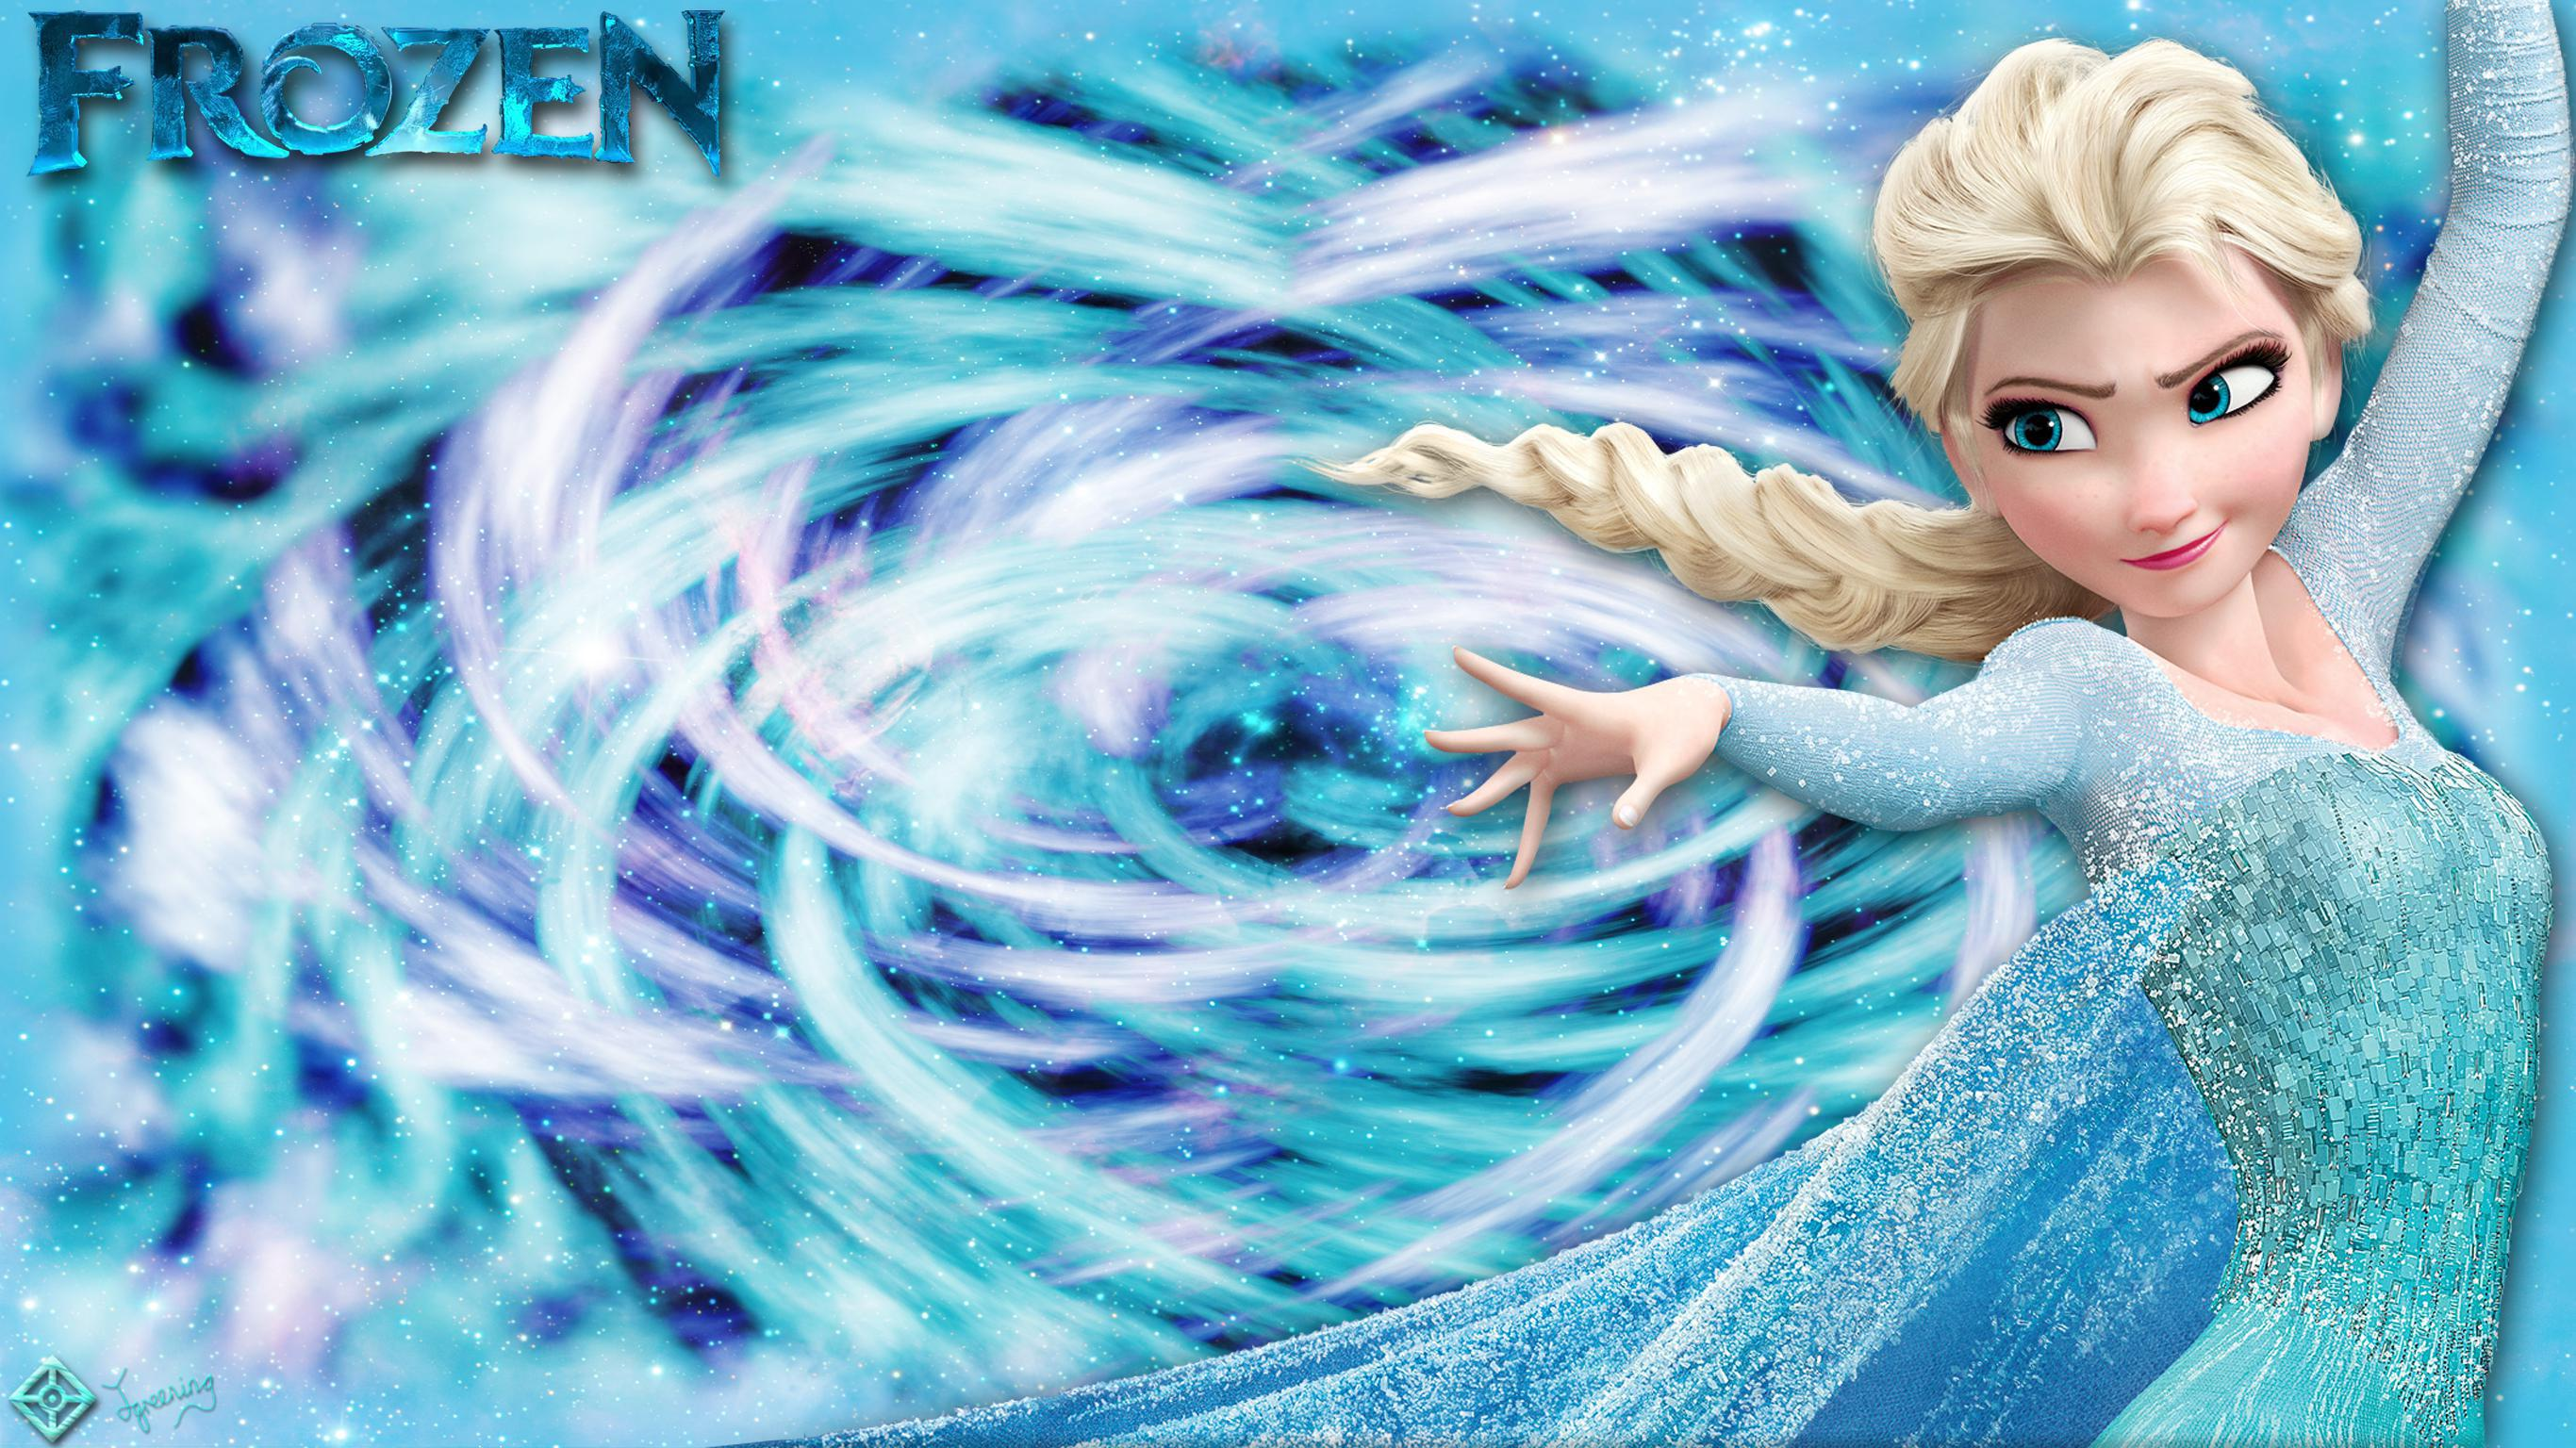 tags frozen disney frozen movies frozen movies disney frozen elsa elsa 2732x1536